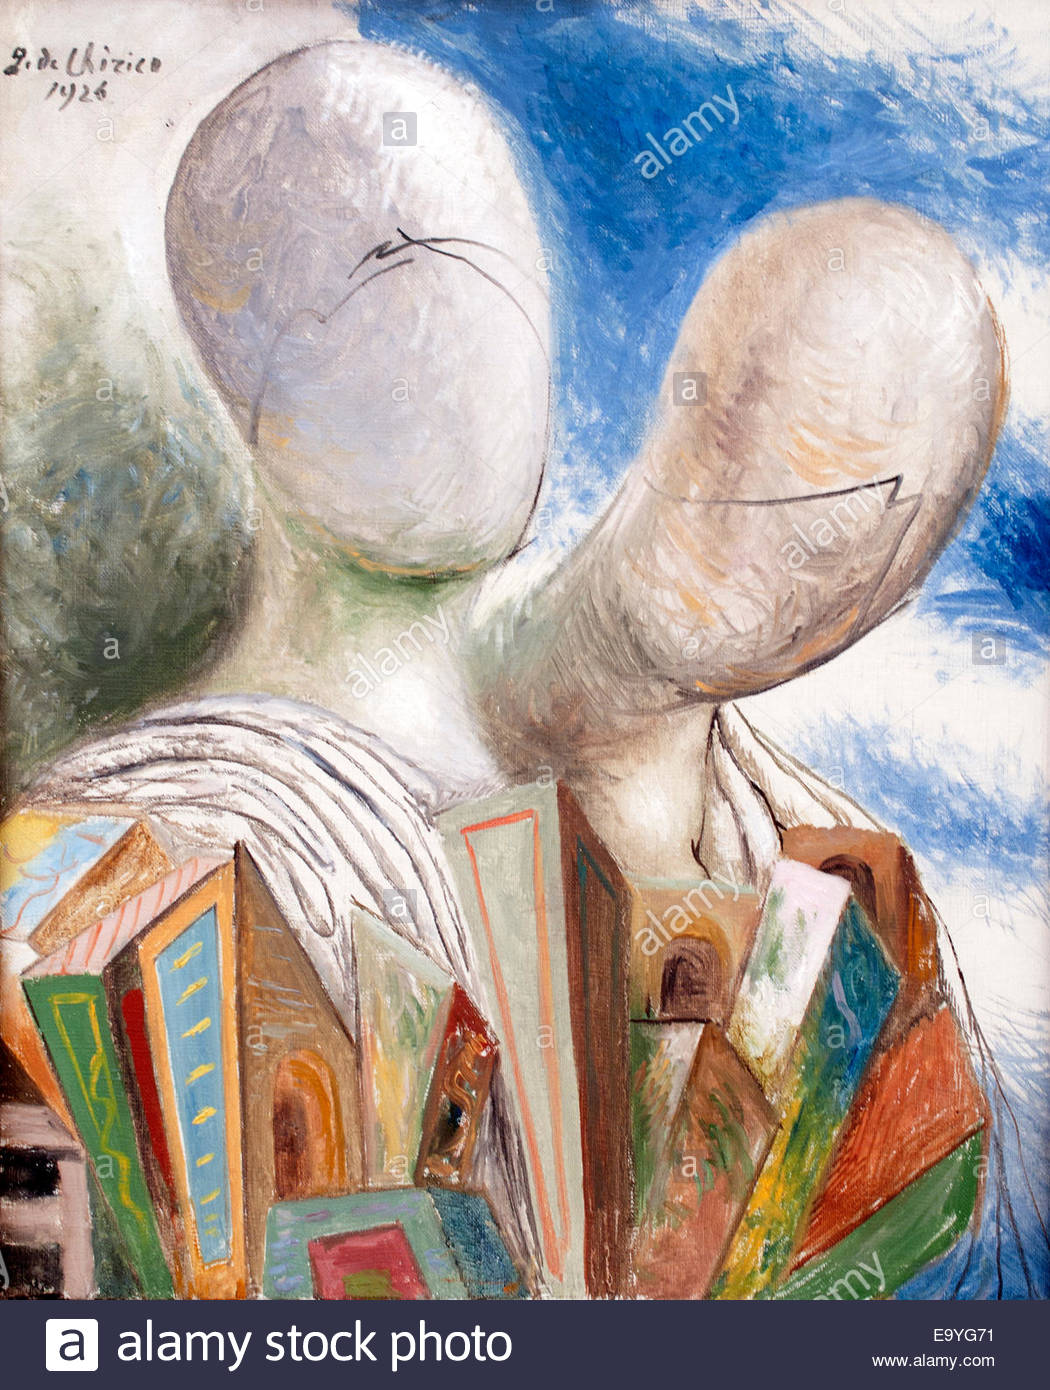 The Husband 1926  Giorgio de Chirico 1888 - 1978  Surrealist Italian painter - Stock Image